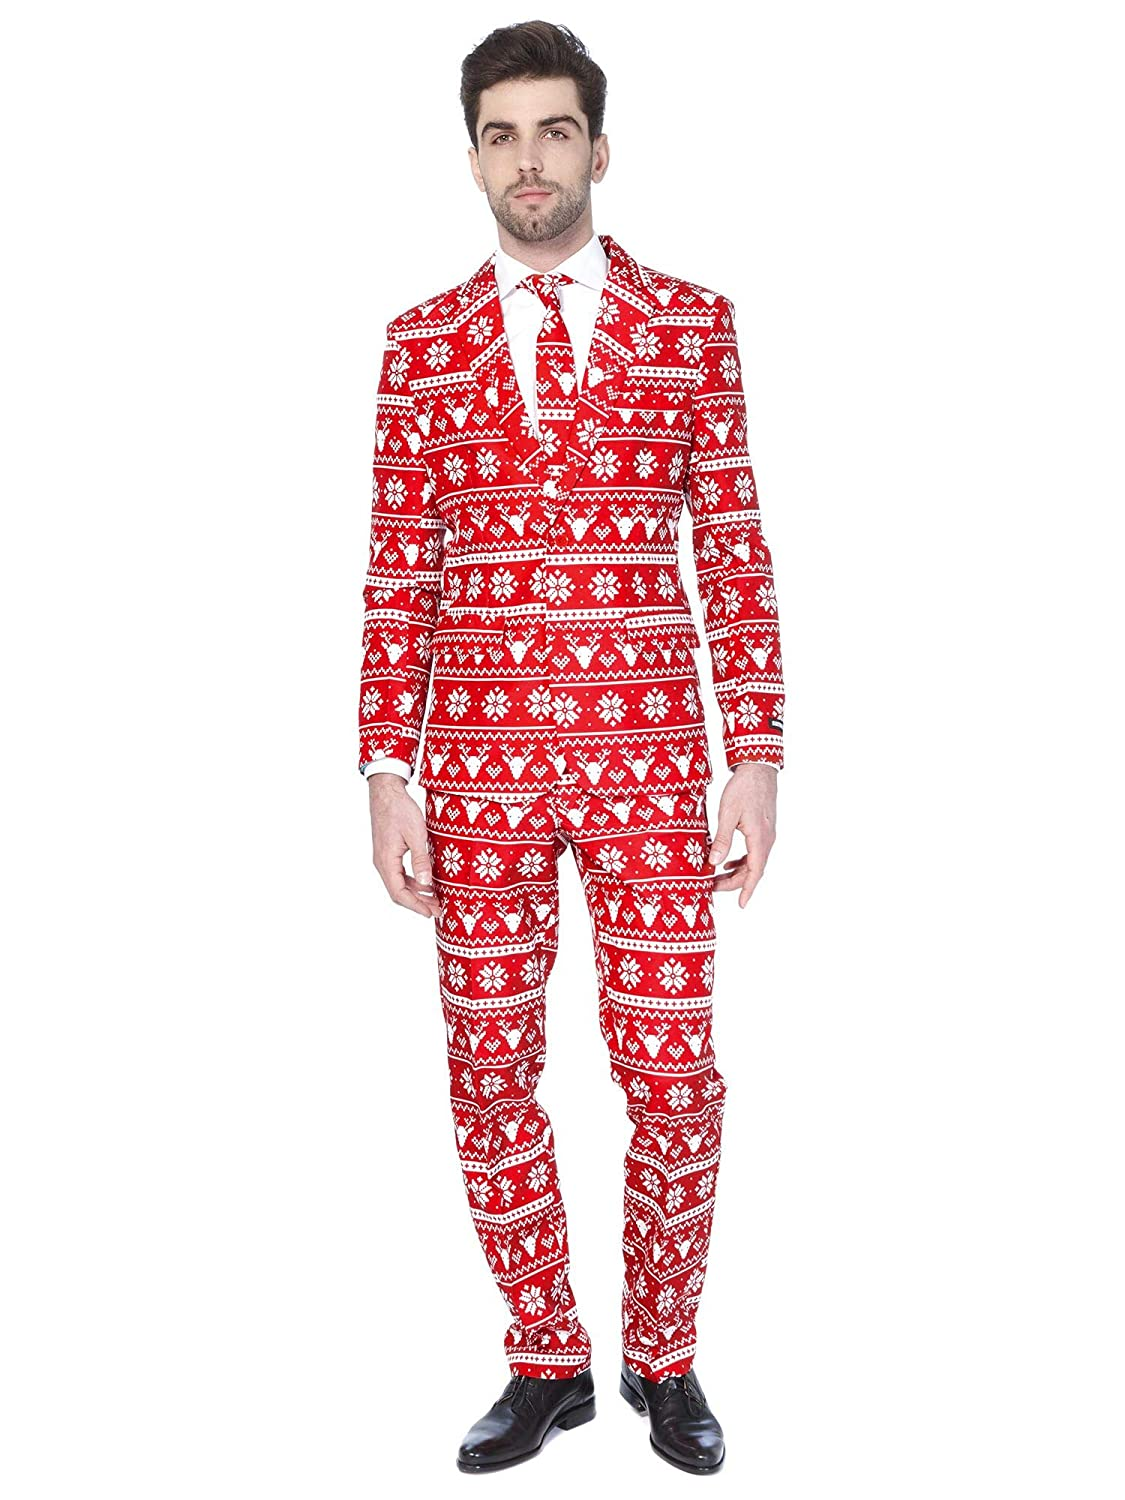 Red Nordic XL Suitmeister Christmas Suits for Men in Different Prints  Ugly Xmas Sweater Costumes Include Jacket Pants & Tie (bluee Snowman,XL)